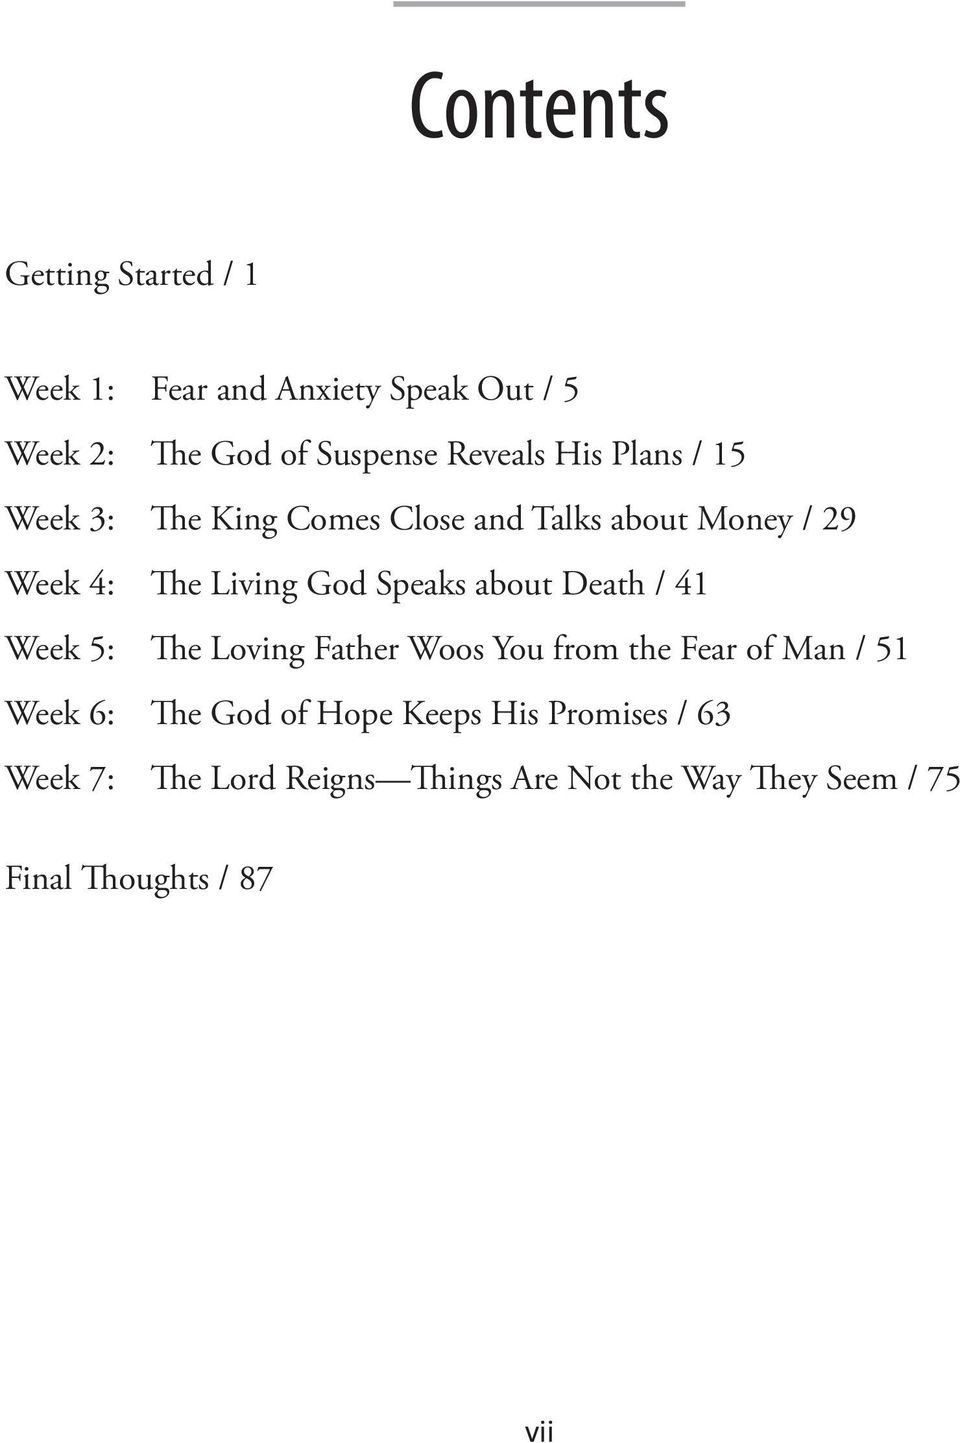 about Death / 41 Week 5: The Loving Father Woos You from the Fear of Man / 51 Week 6: The God of Hope